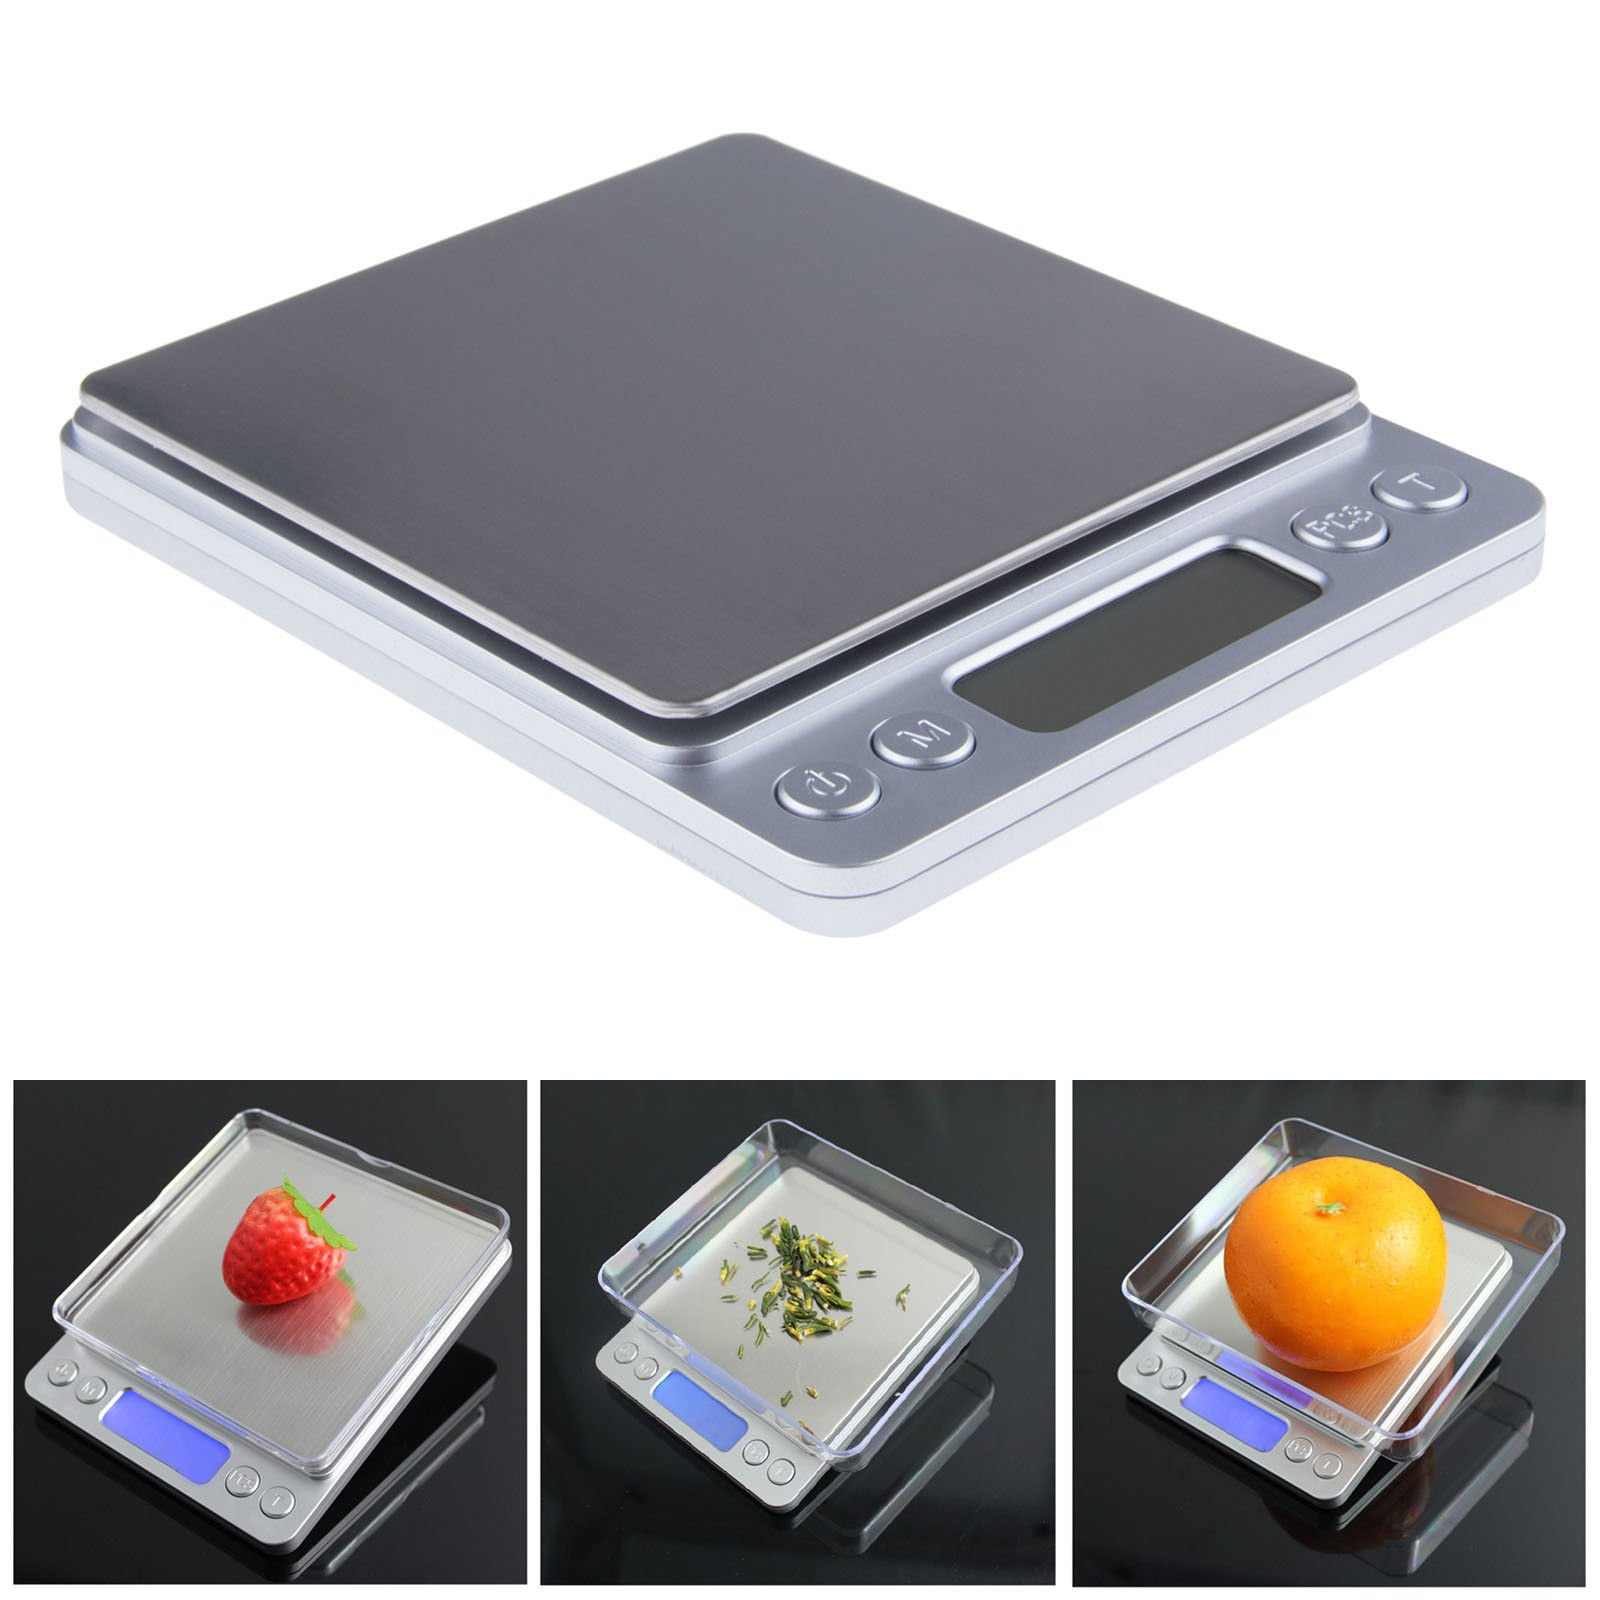 Mini Precision Digital Scale 2000g X 0.1g Jewelry Gold Silver Coin Gram Balance